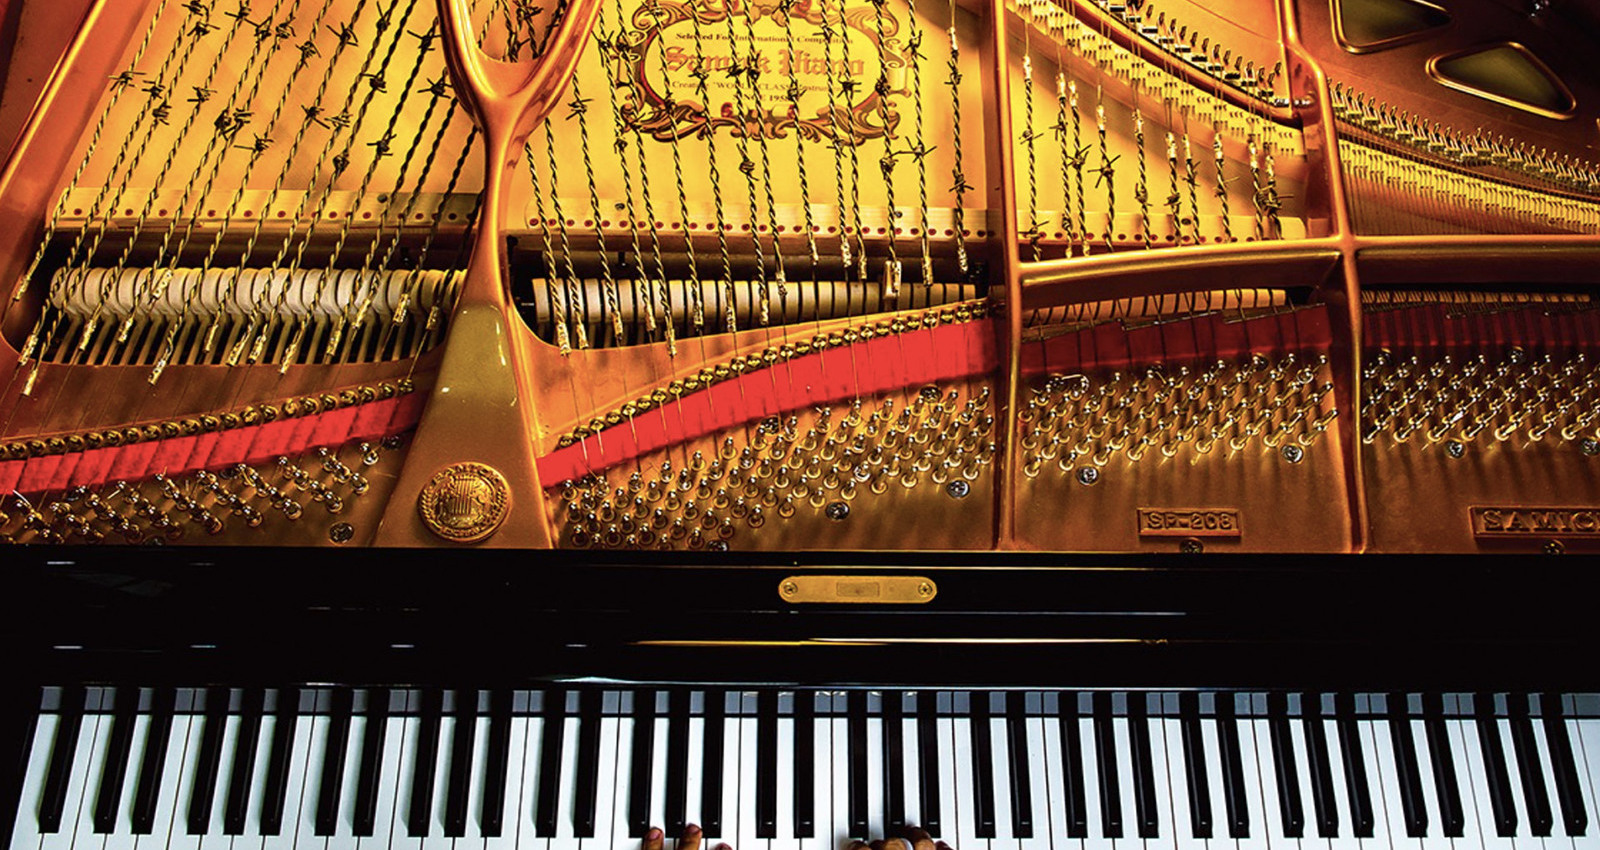 Piano of Unification